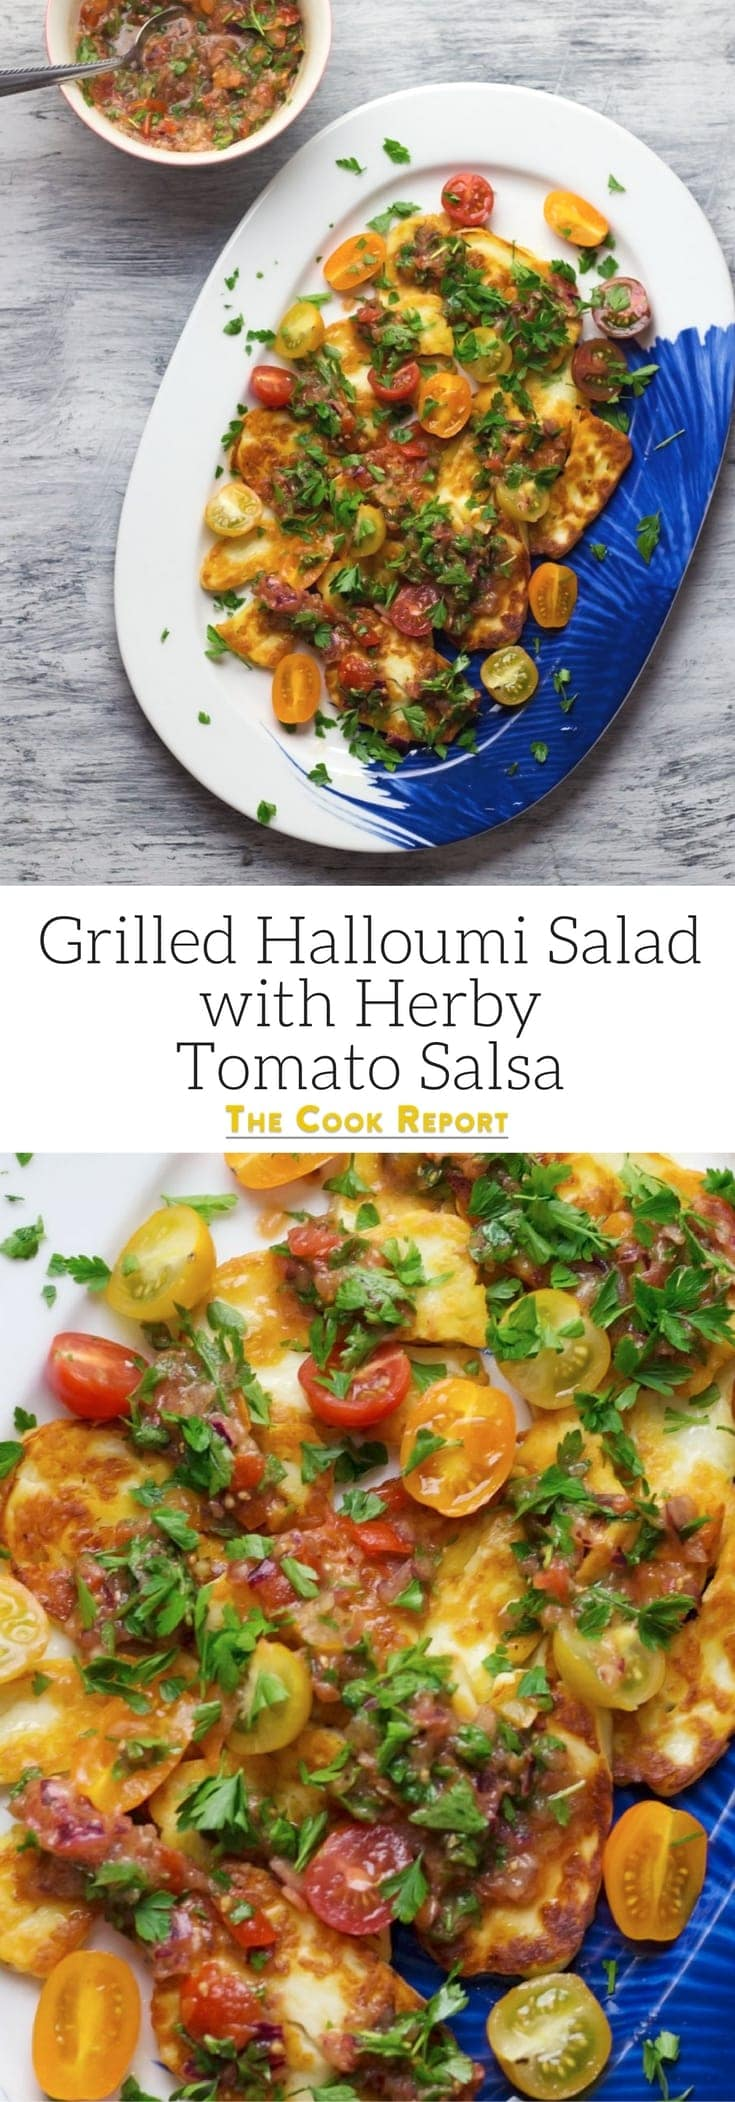 This grilled halloumi salad is topped with a beautiful herby tomato salsa. It's so easy to make and is the ultimate summer meal!